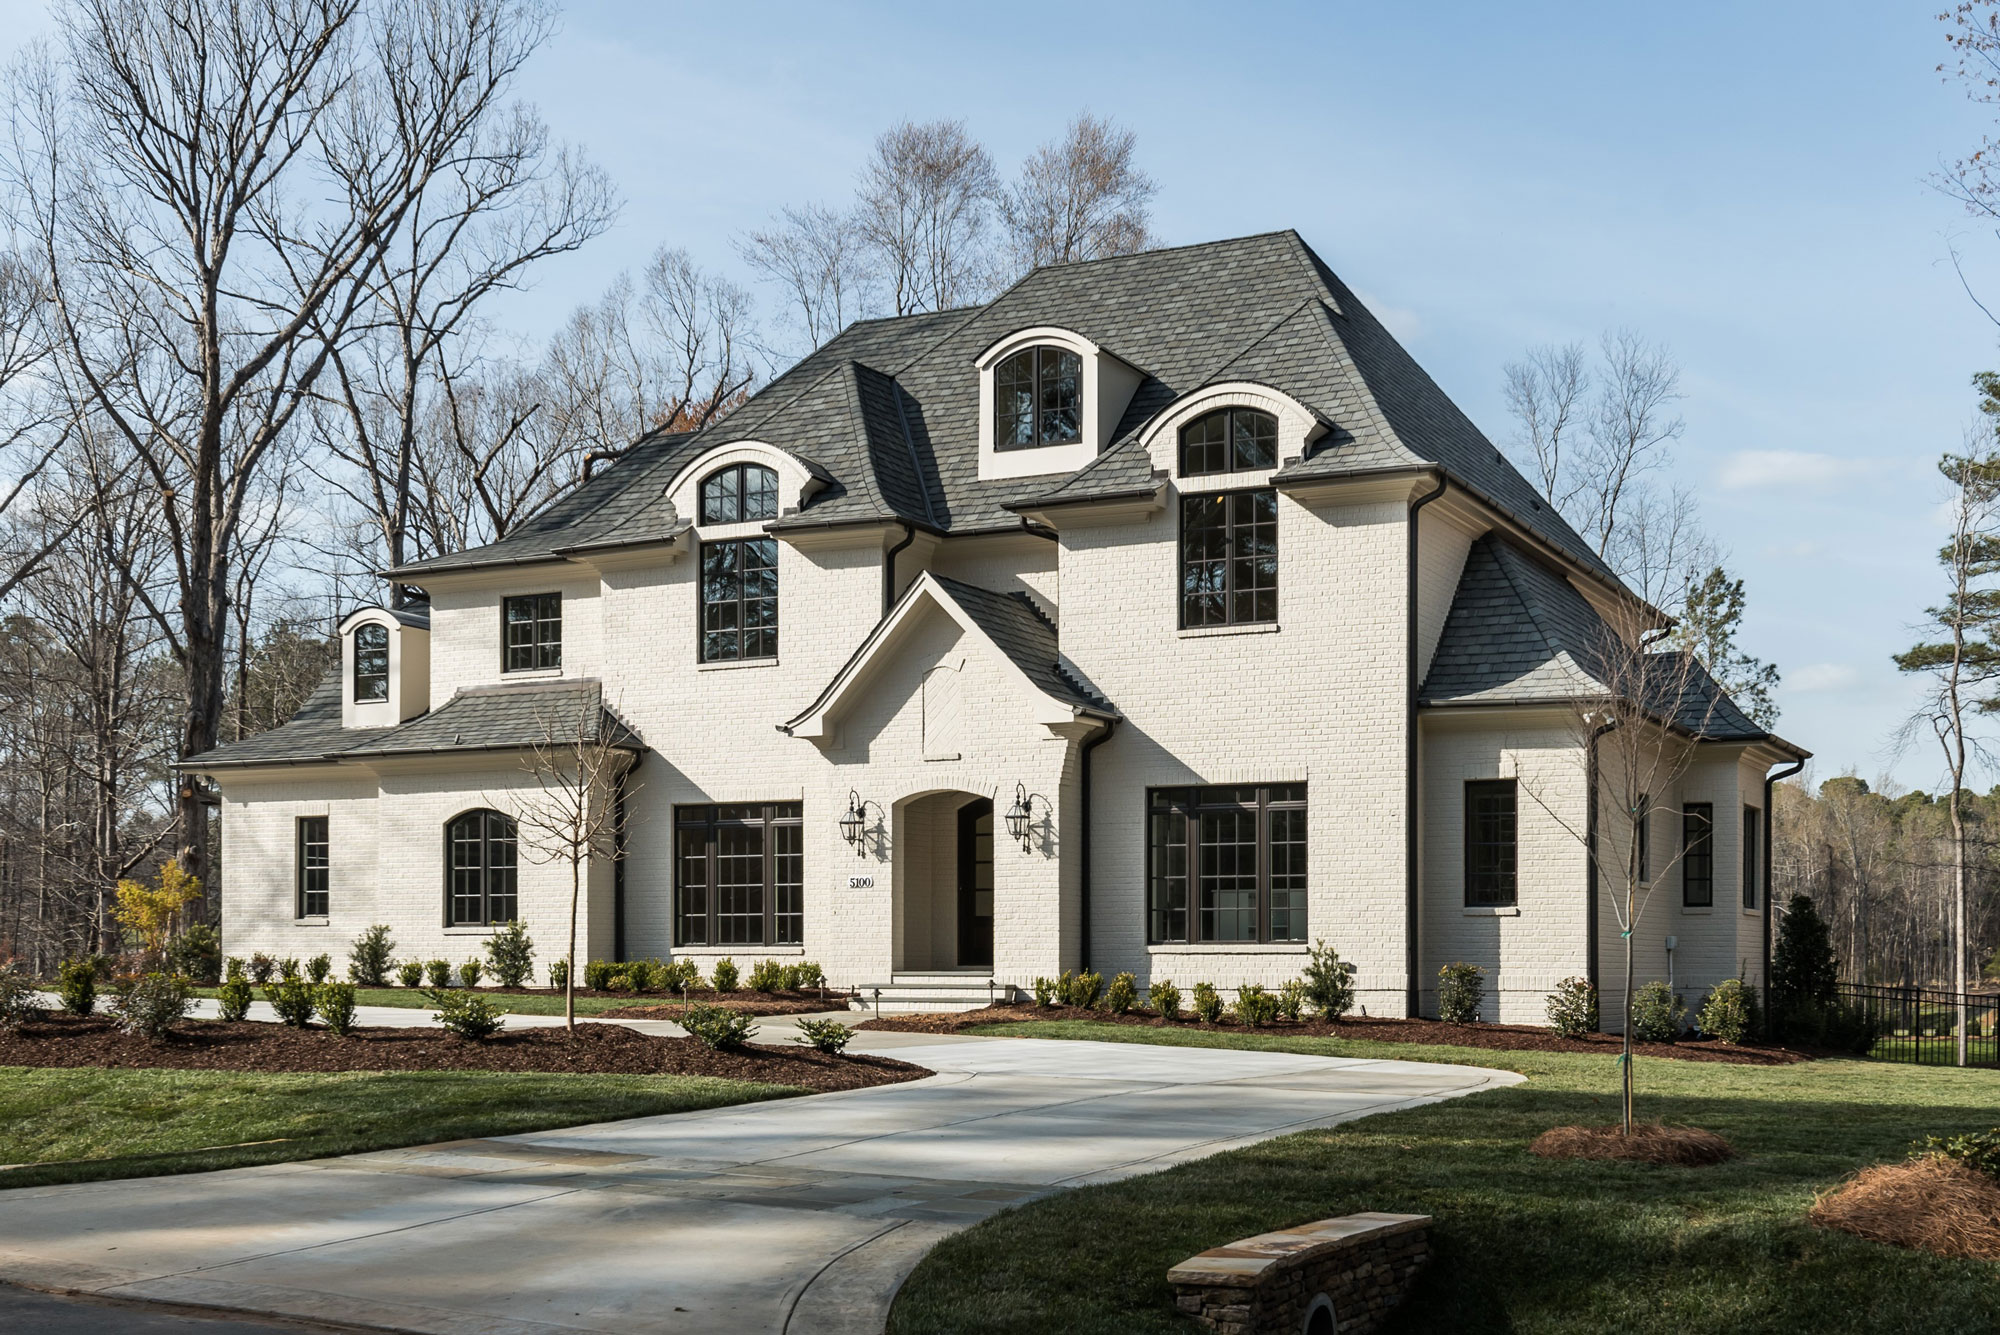 Exterior of home by Luxury Real Estate Developer